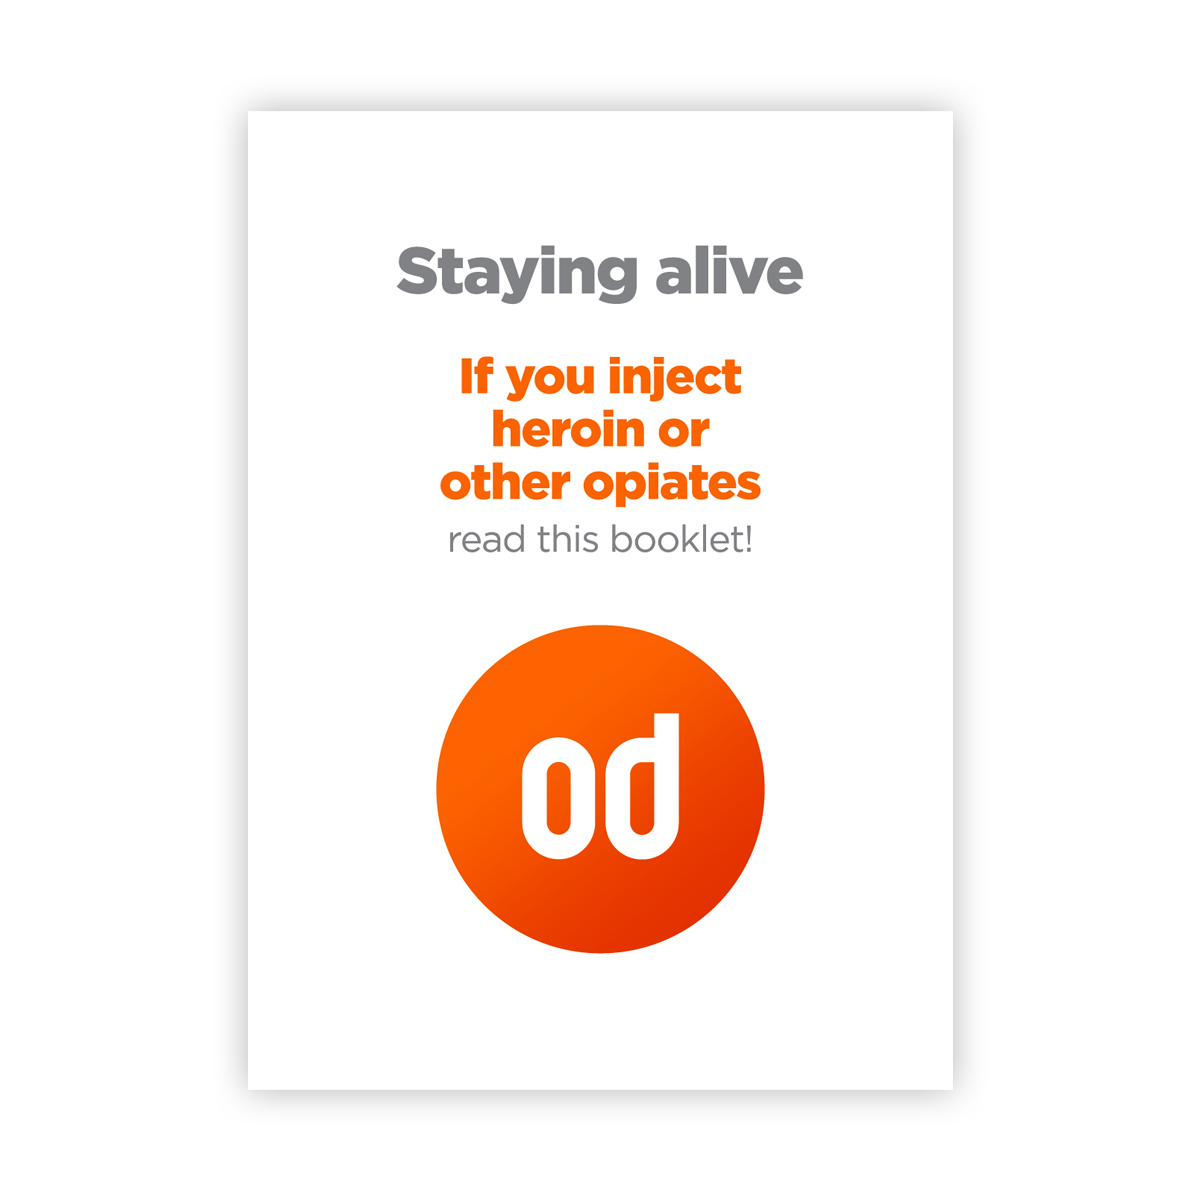 Staying alive (od booklet)